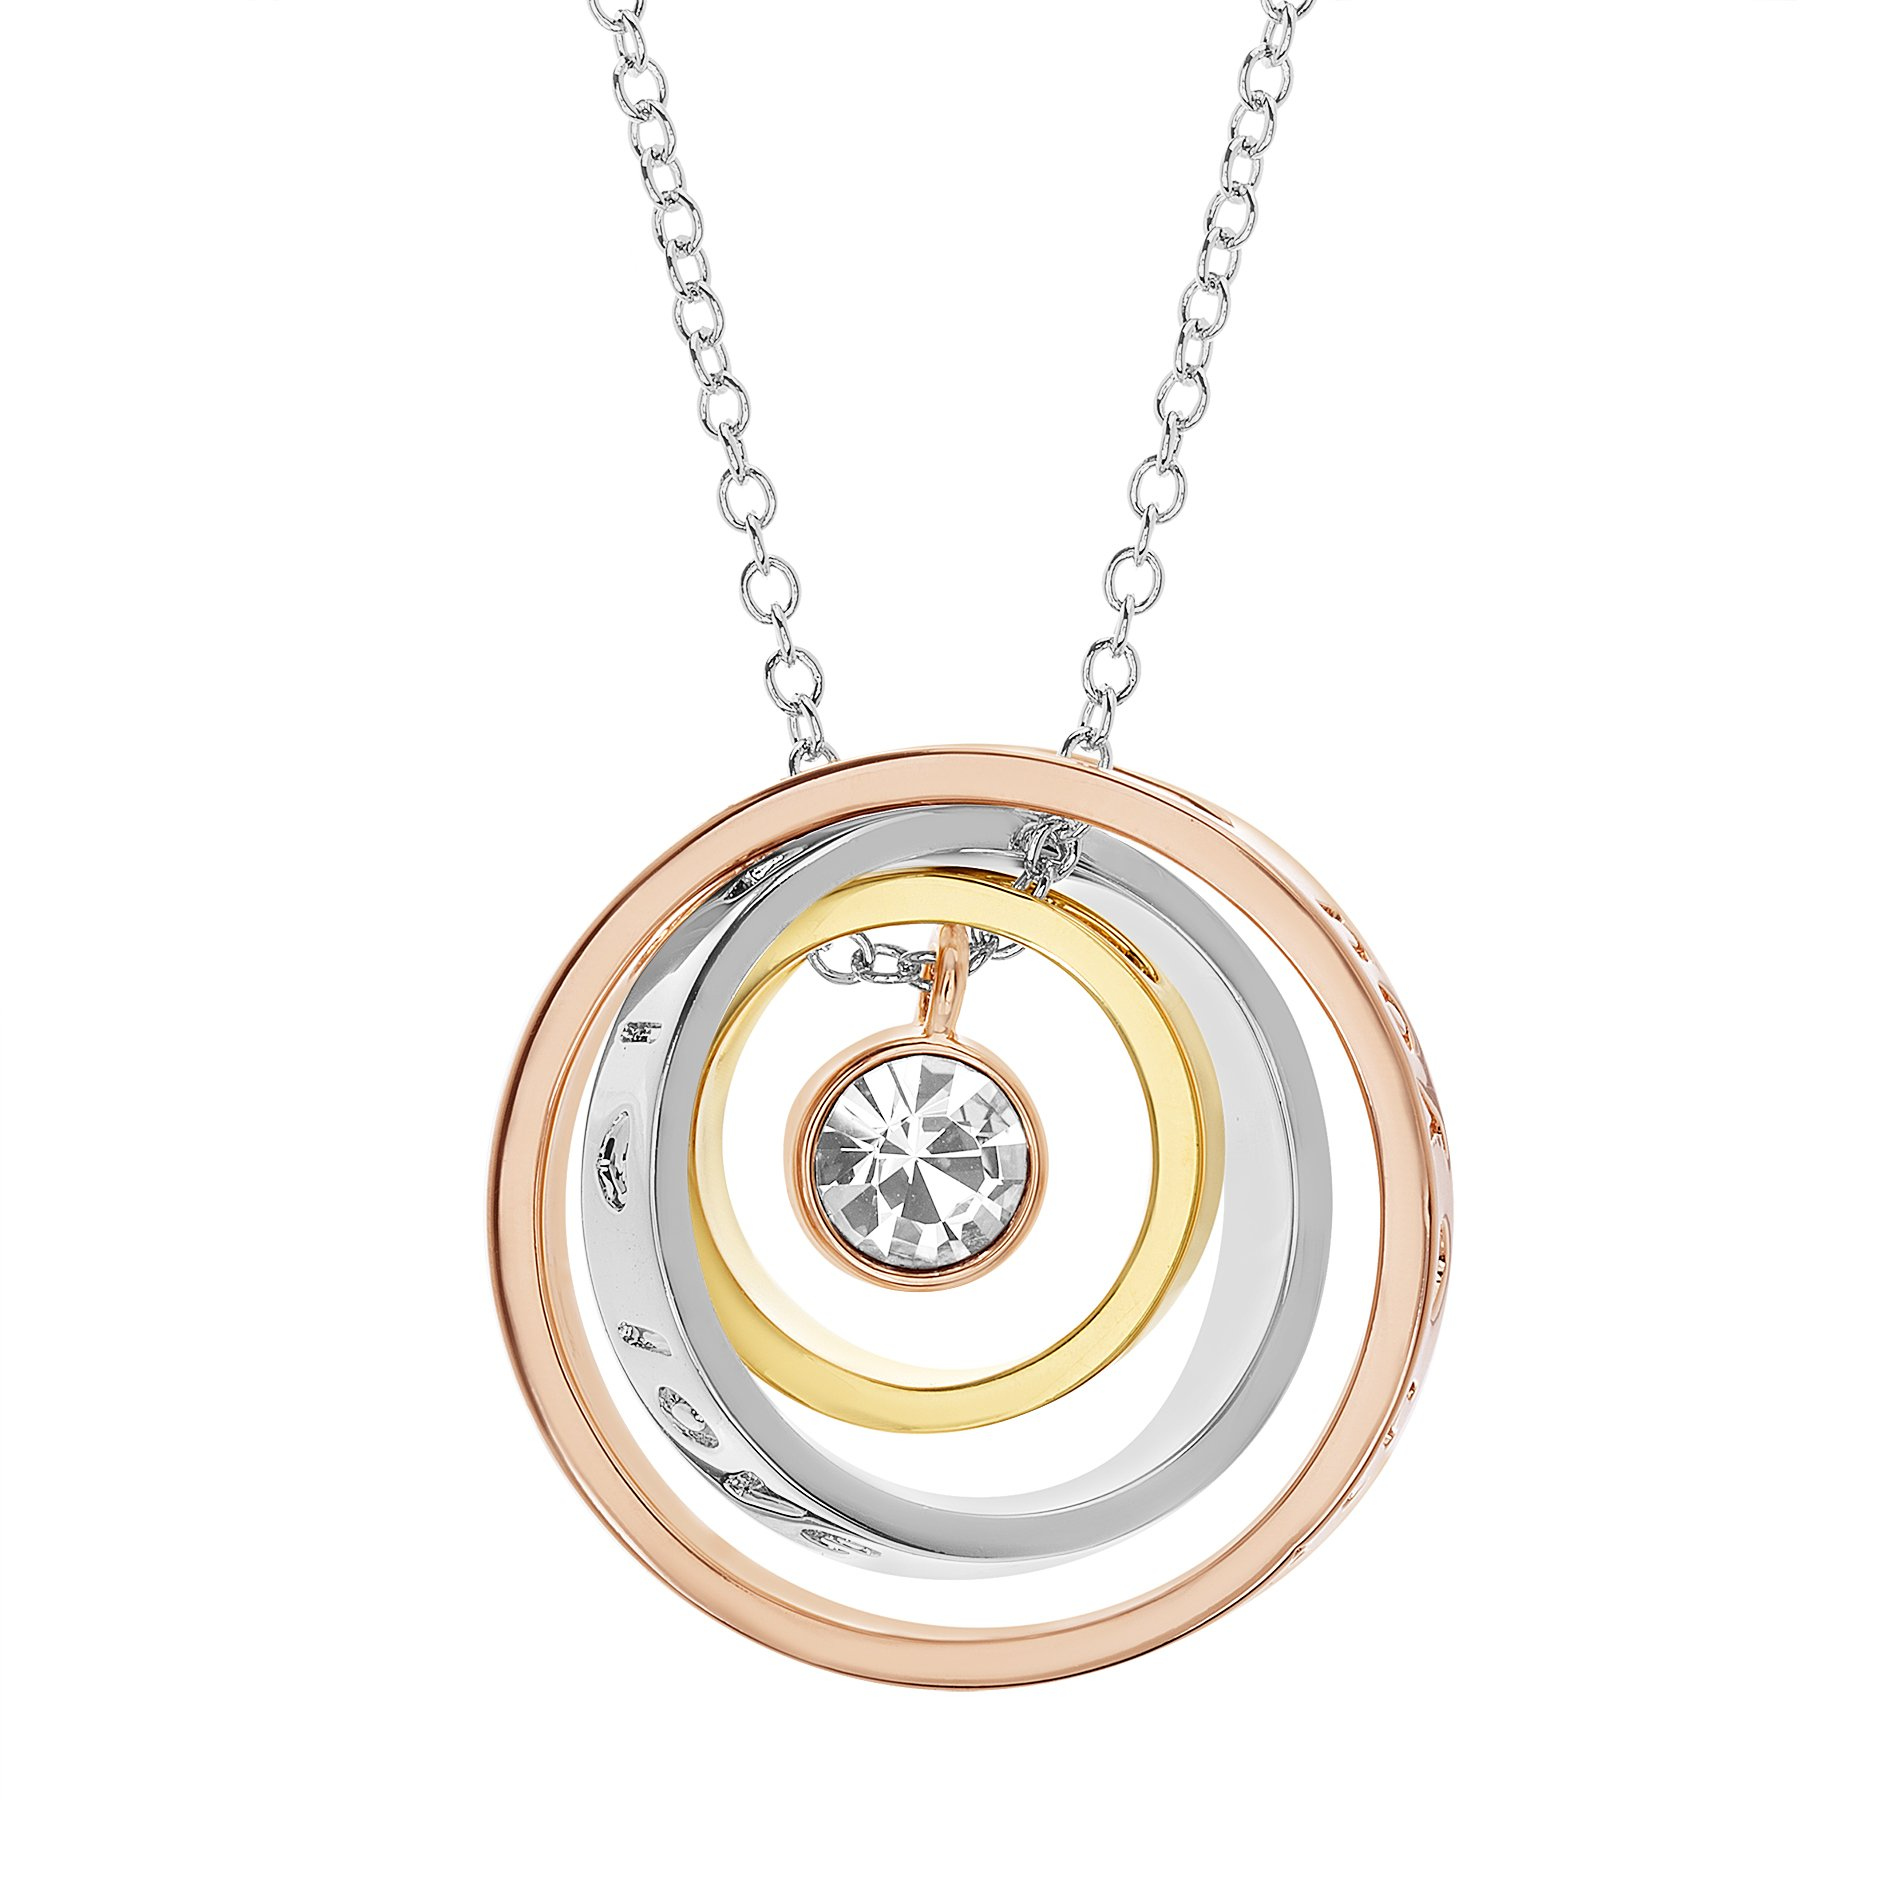 Devin Rose Orbit Multi Circle Engraved Love You Mom 3D Pendant Necklace on 18 inch Necklace for Women made with Swarovski Crystals in Tri-Color Plated Brass